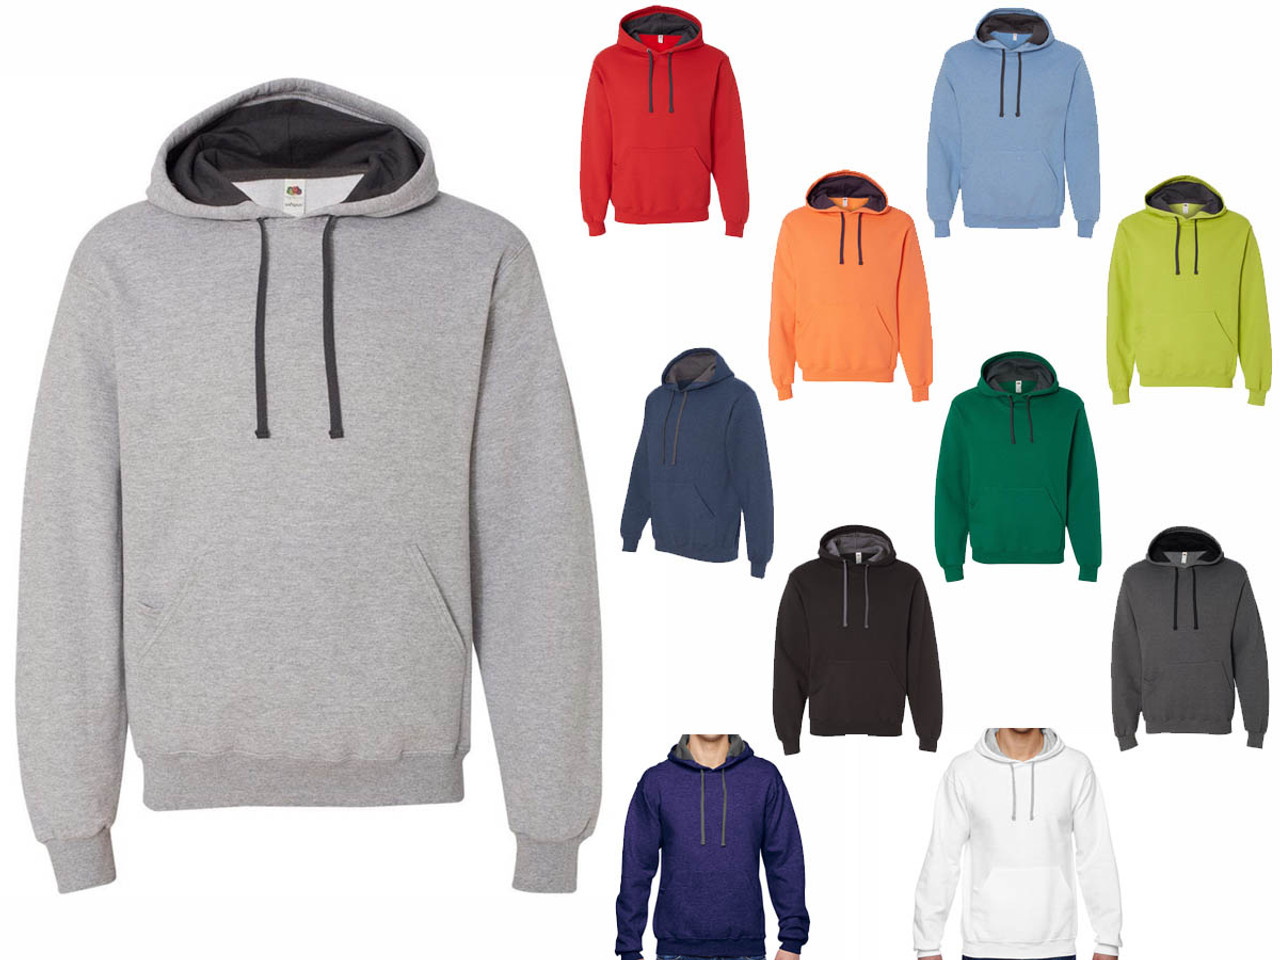 Fruit Of The Loom Sf76r Sofspun Hooded Pullover Sweatshirt